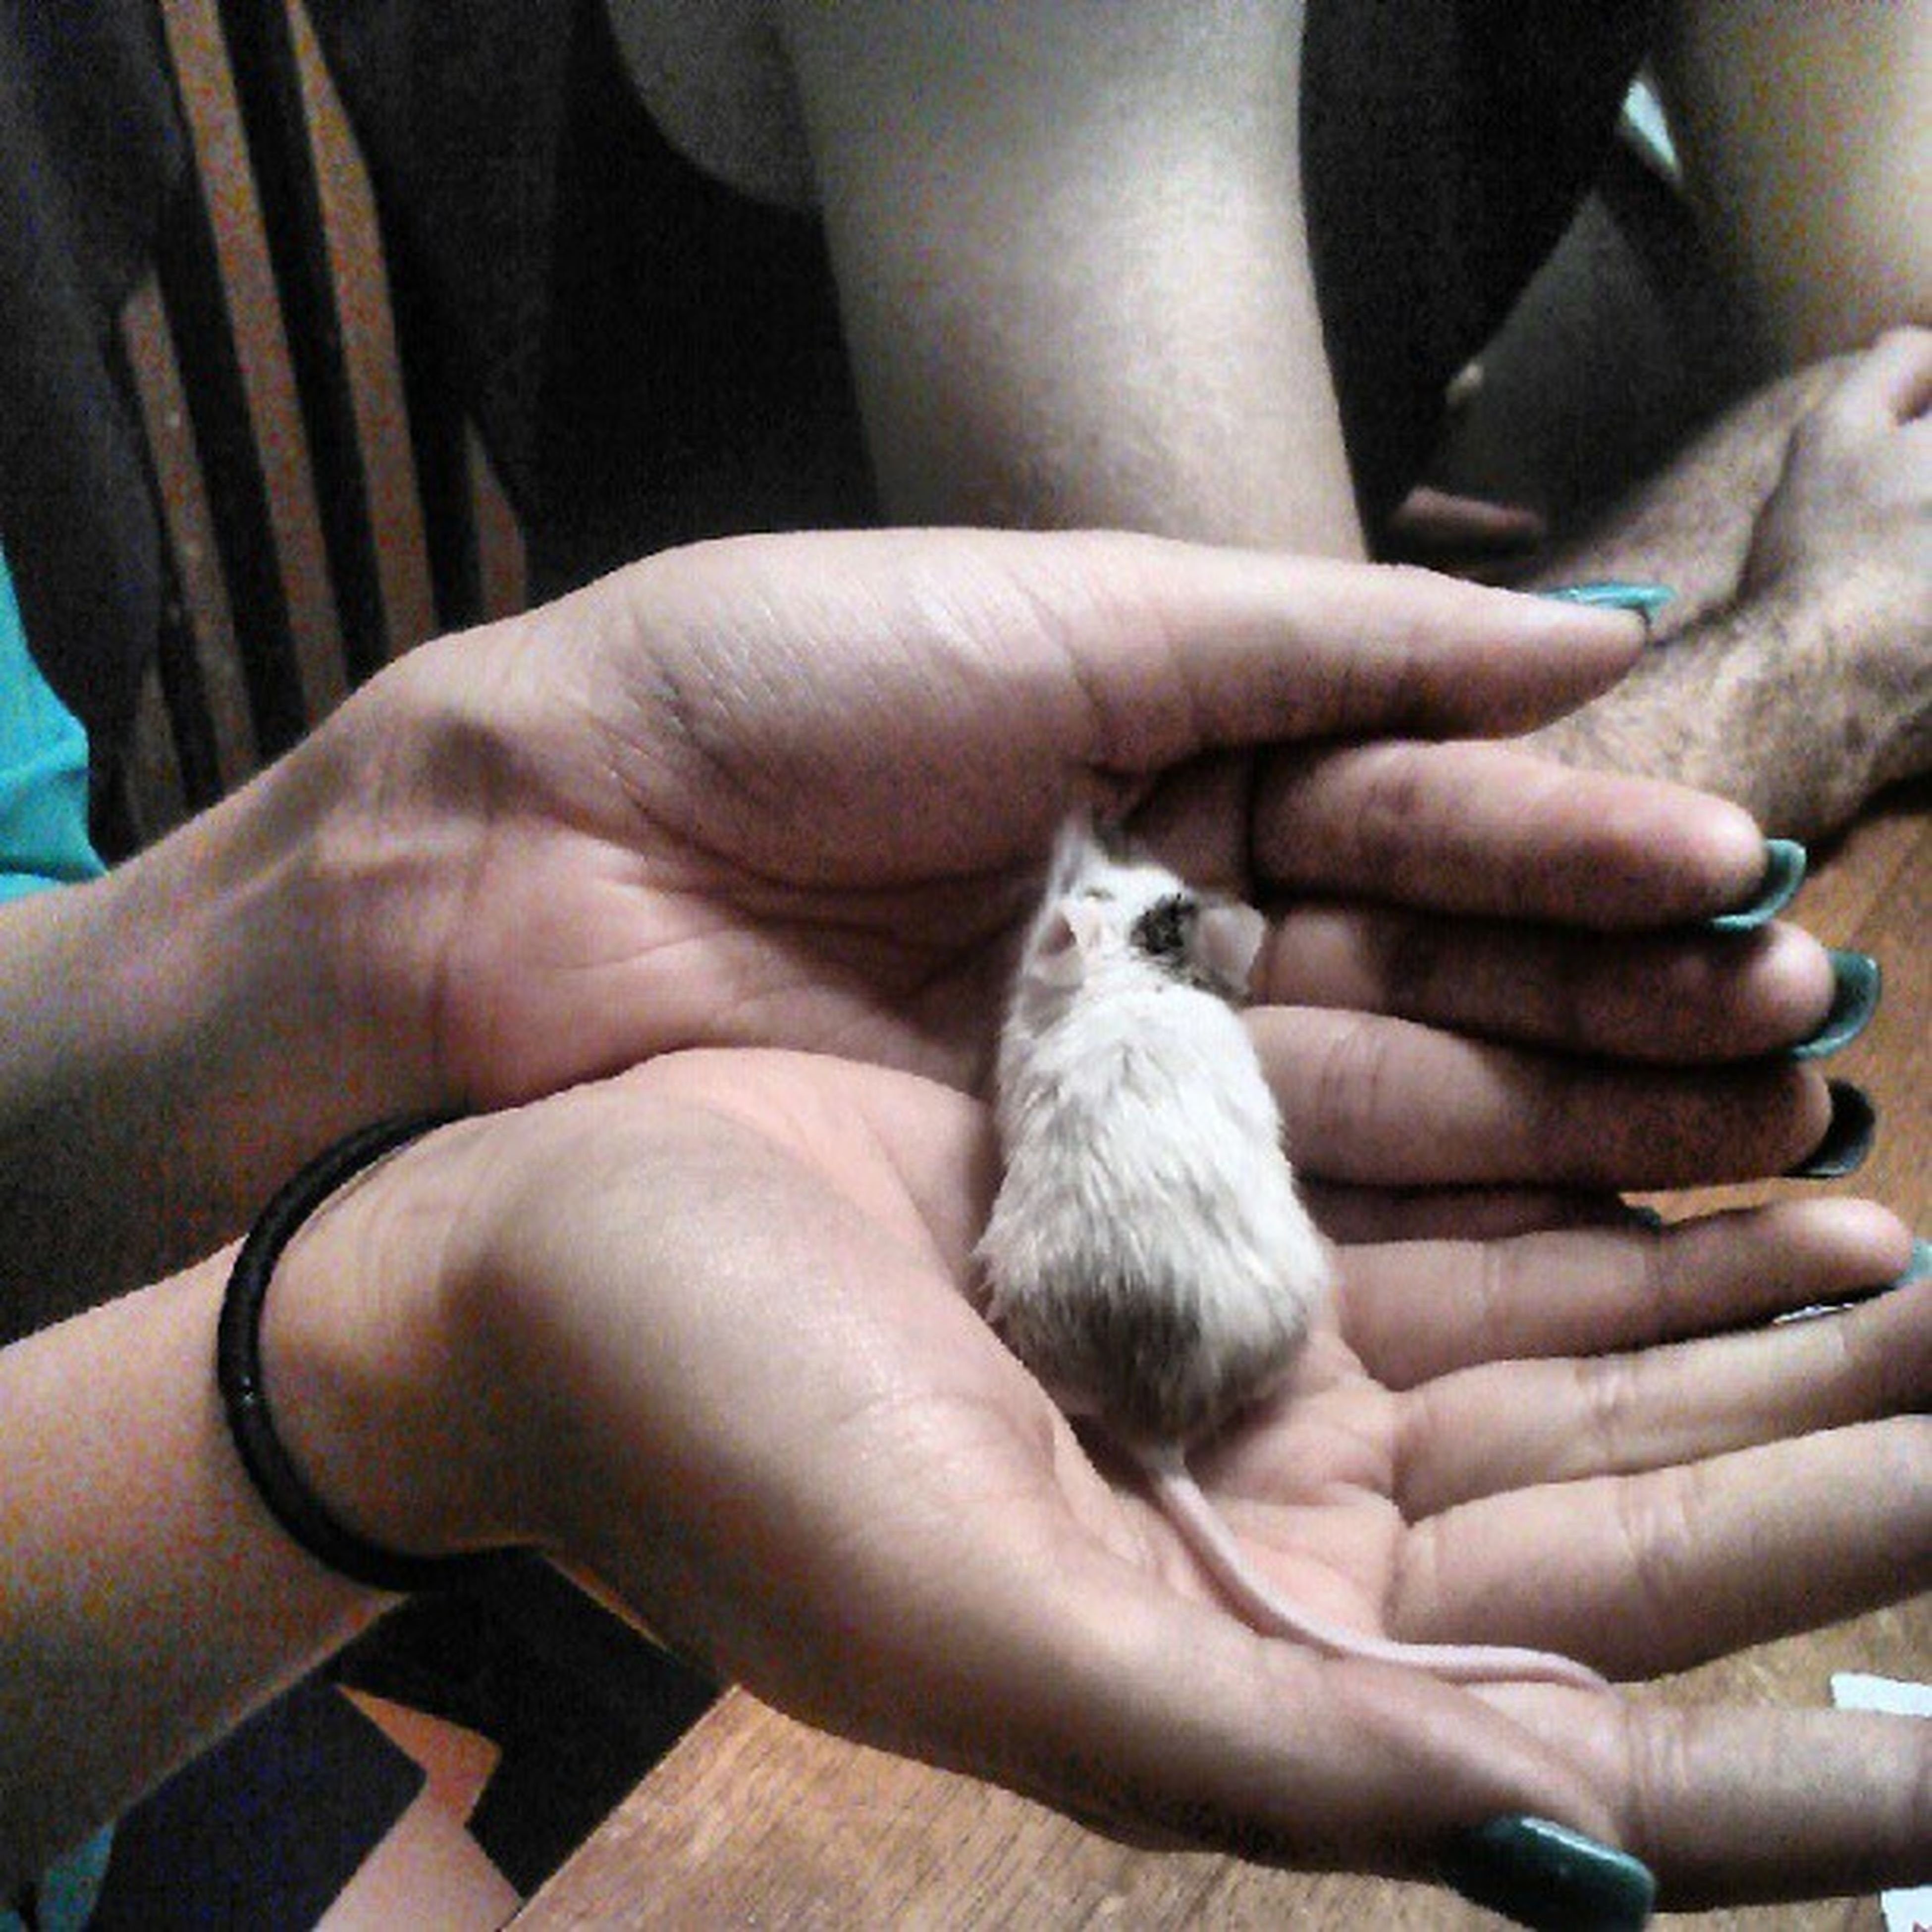 person, animal themes, part of, cropped, holding, one animal, human finger, togetherness, indoors, animals in the wild, men, wildlife, lifestyles, unrecognizable person, young animal, care